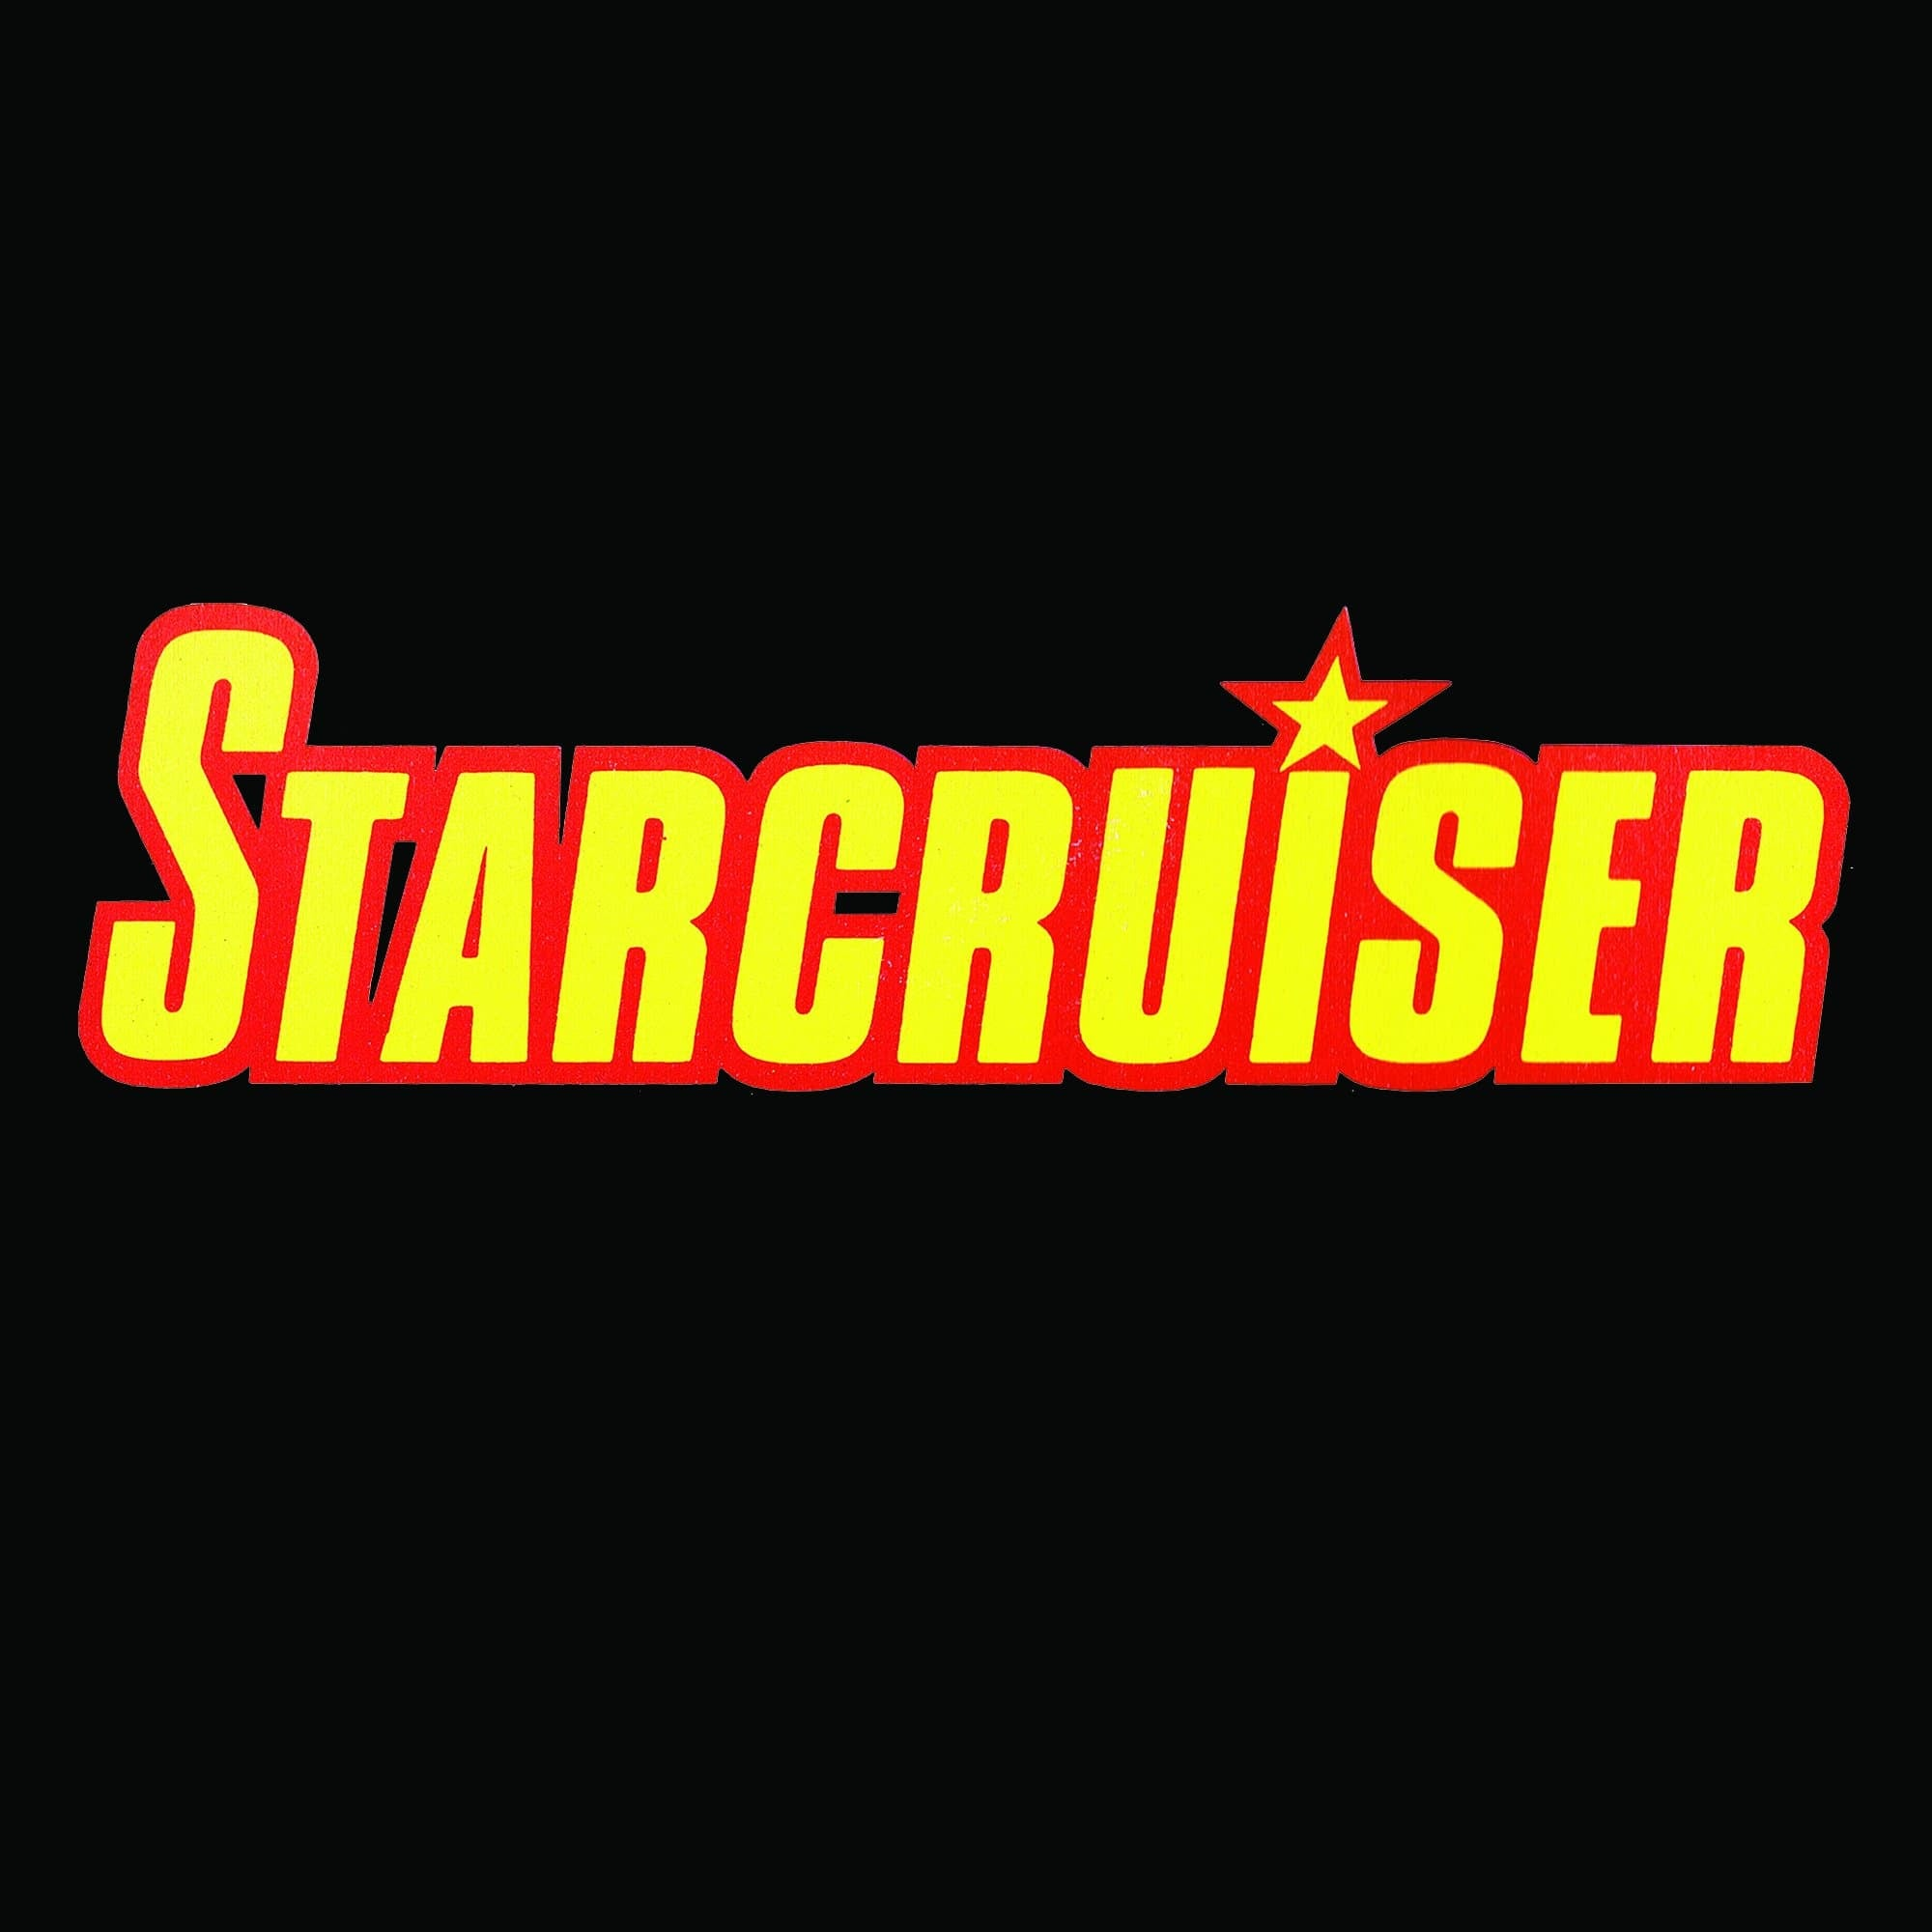 Starcruiser Logo Mug - Black [Official & Exclusive] - The Gerry Anderson Store